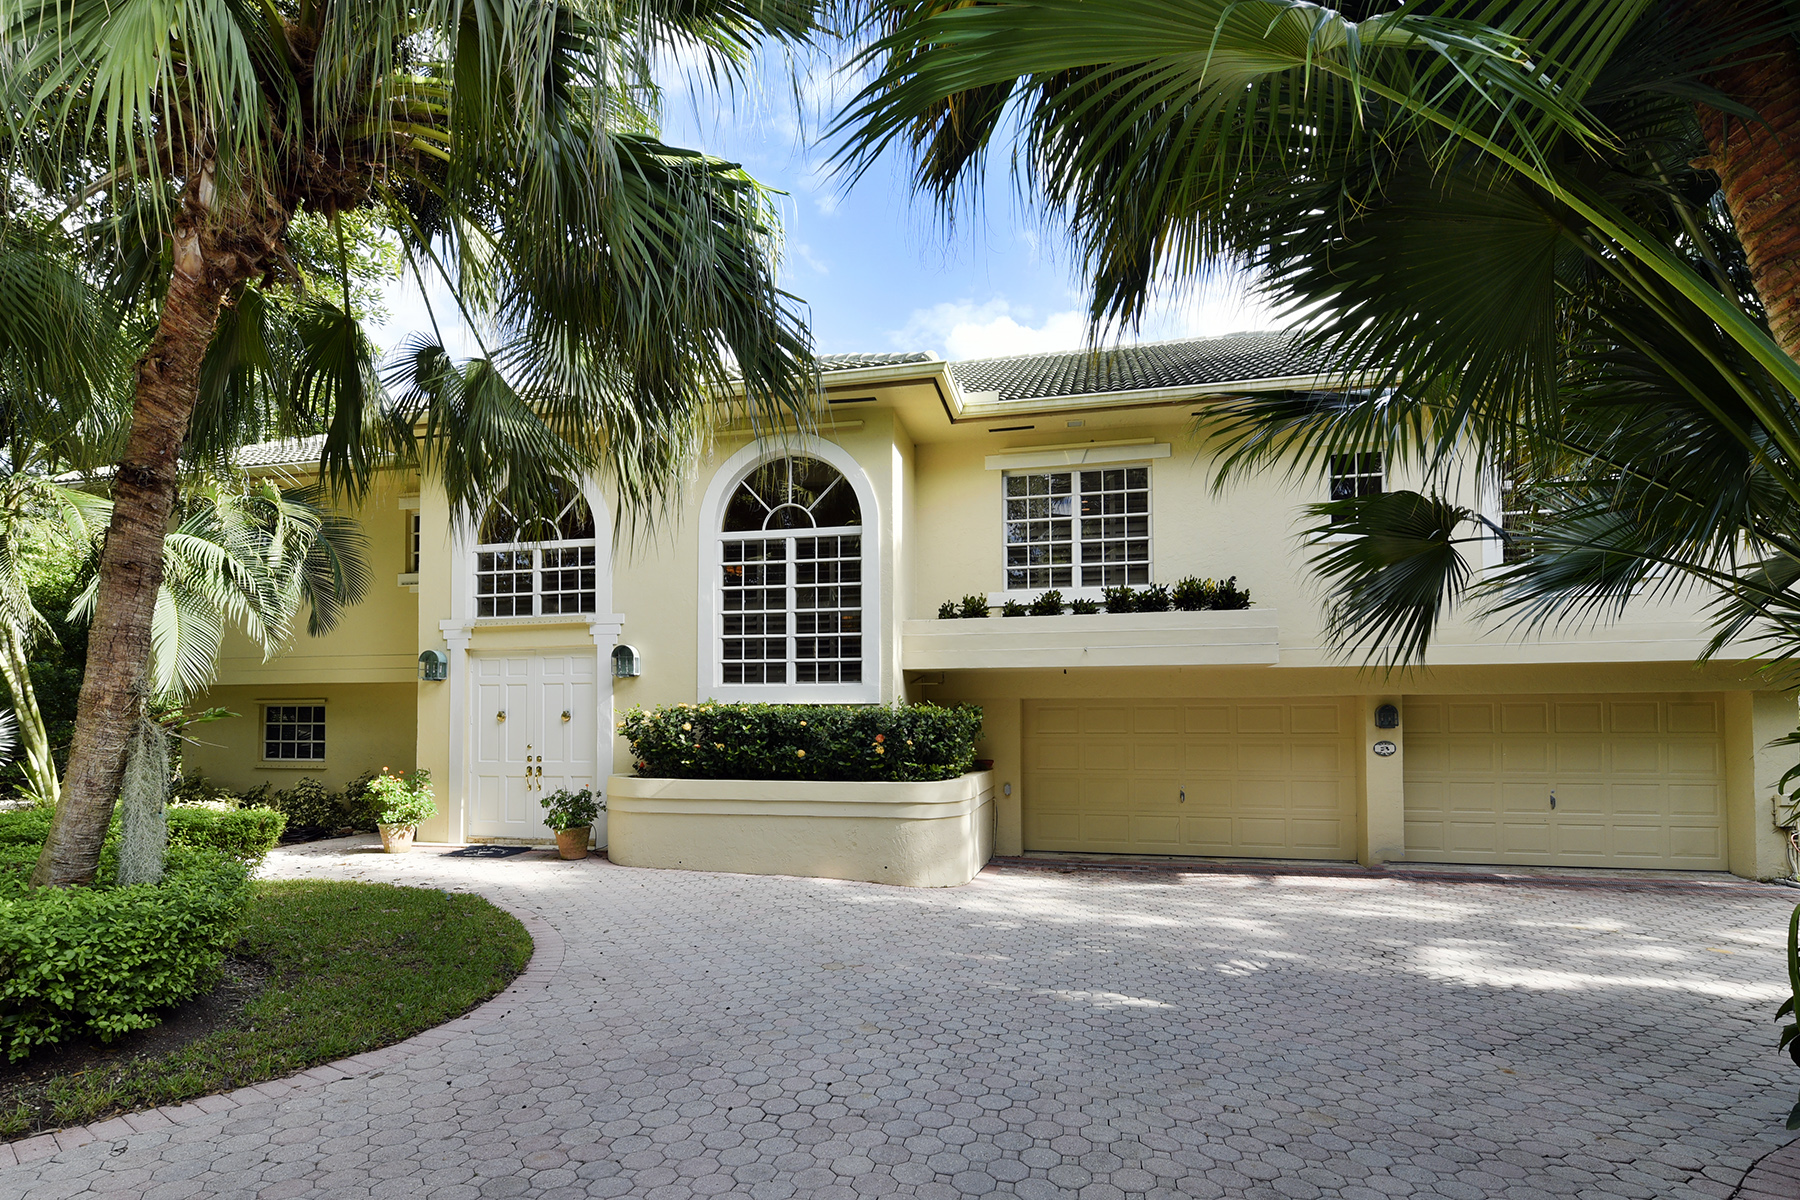 Casa Unifamiliar por un Venta en Charming Golf Course Home at Ocean Reef 3 Bayberry Lane Key Largo, Florida, 33037 Estados Unidos